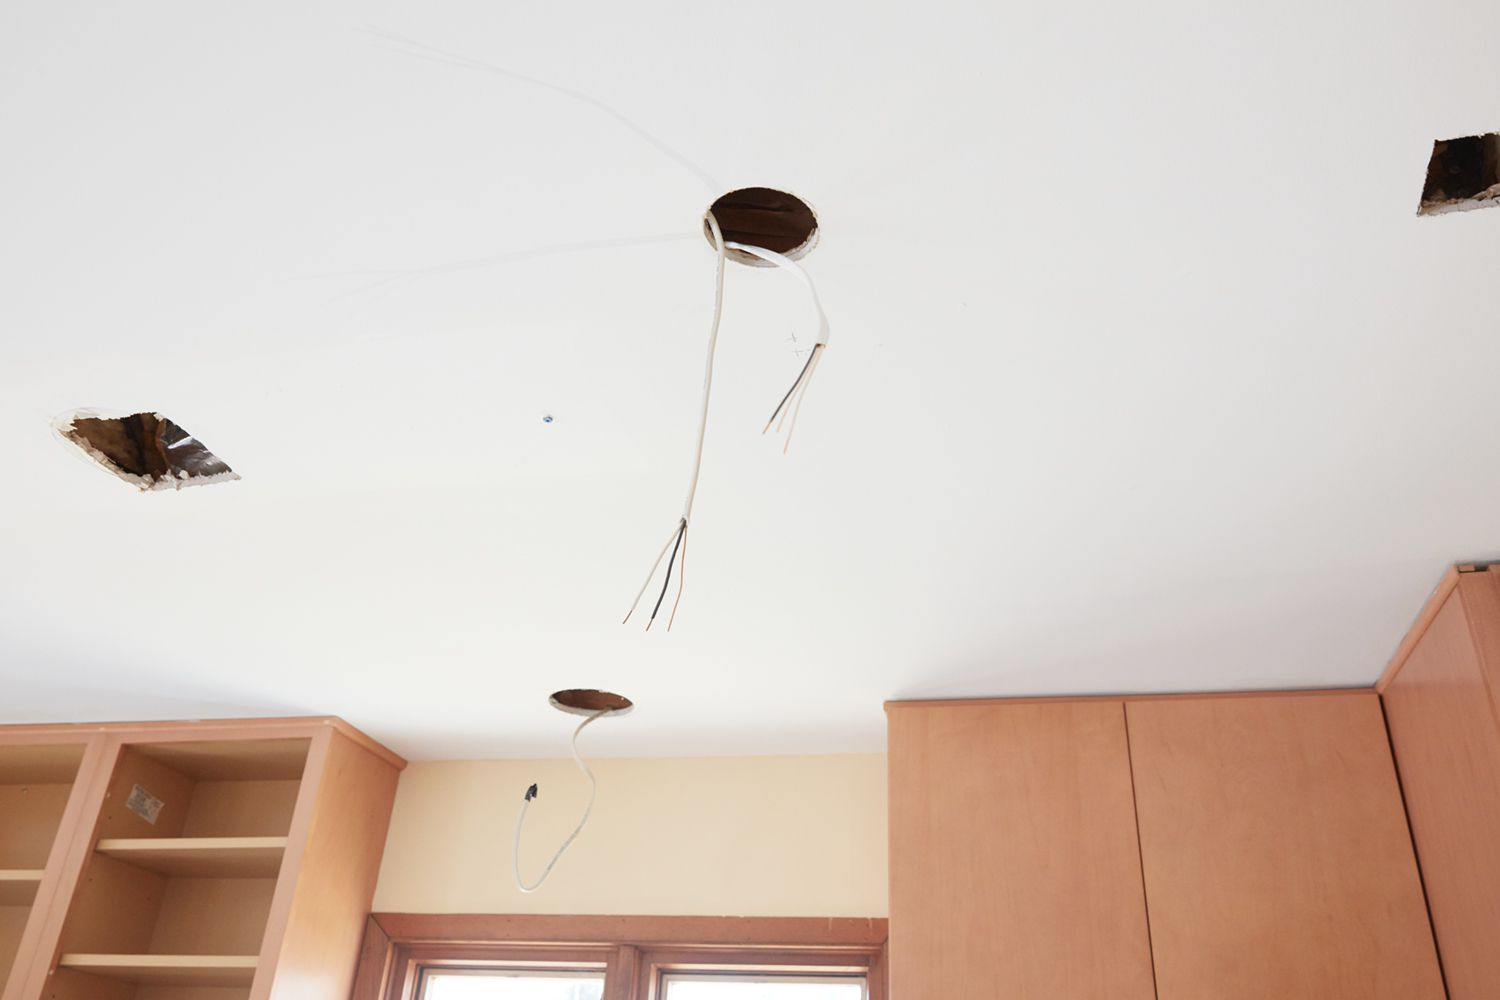 Recessed lighting holes in ceilings with wire dangling needing patches